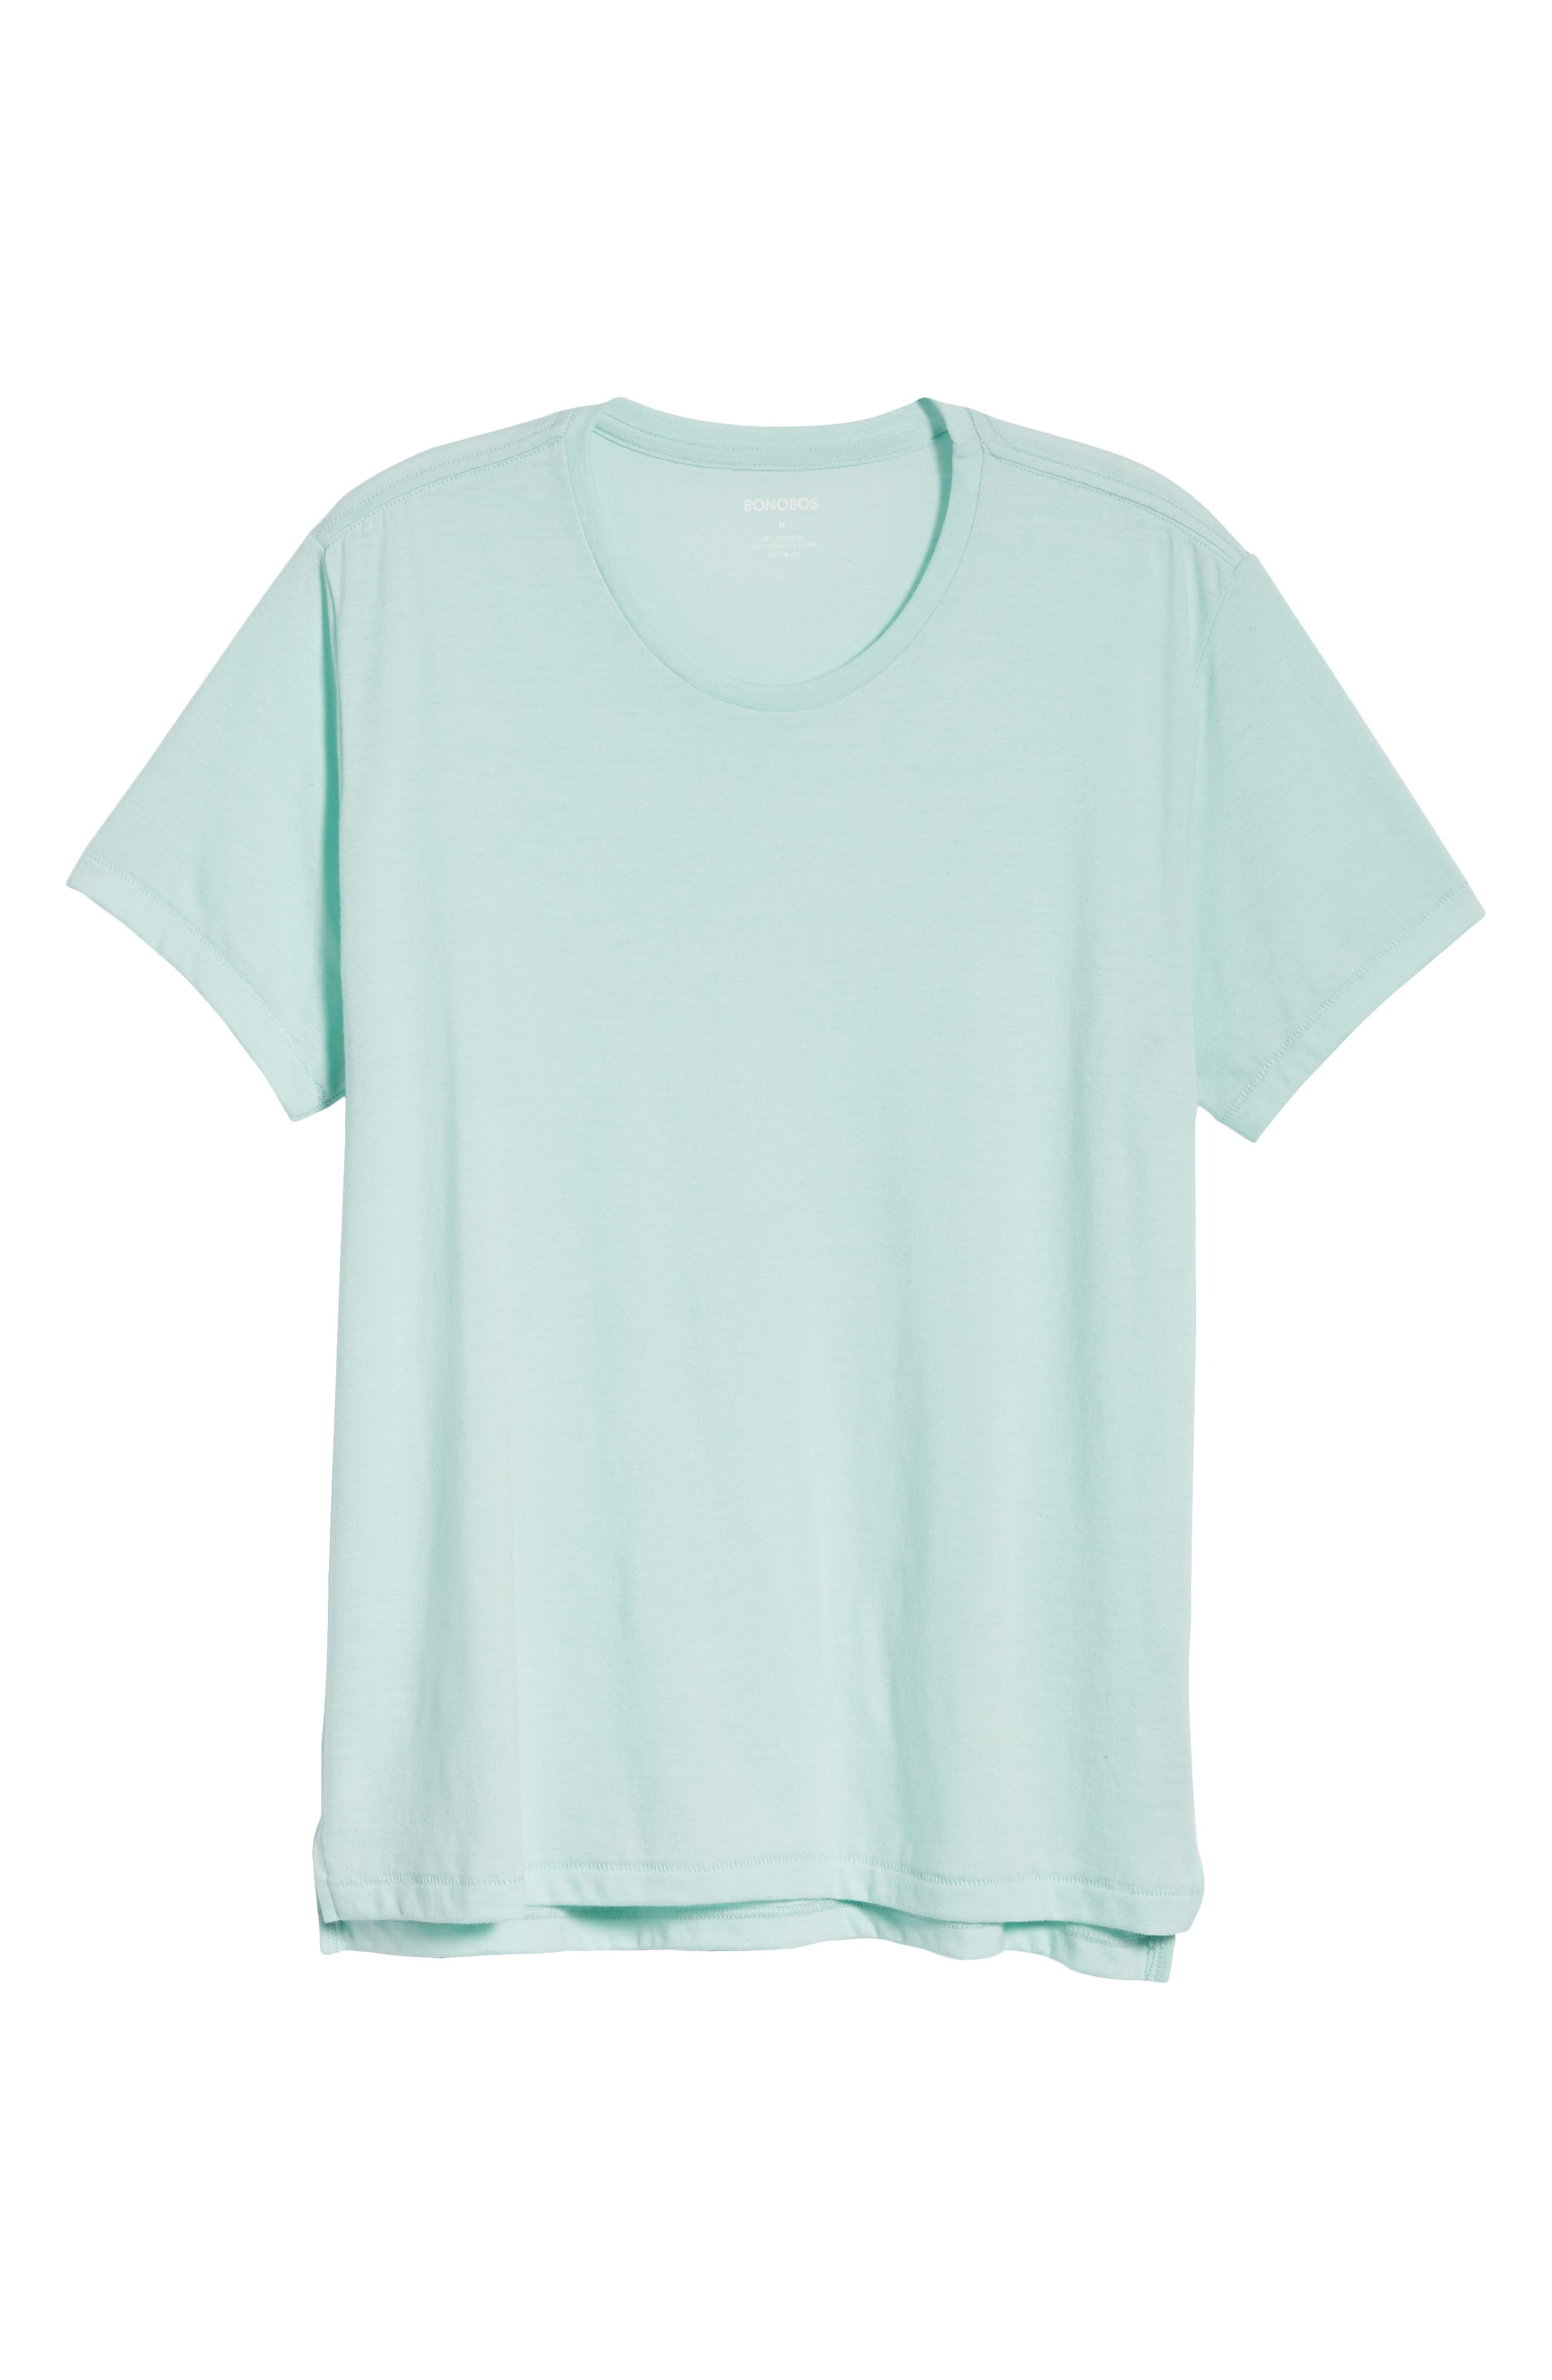 LA Slim Fit Heathered T-Shirt,                             Alternate thumbnail 6, color,                             Heather Mint